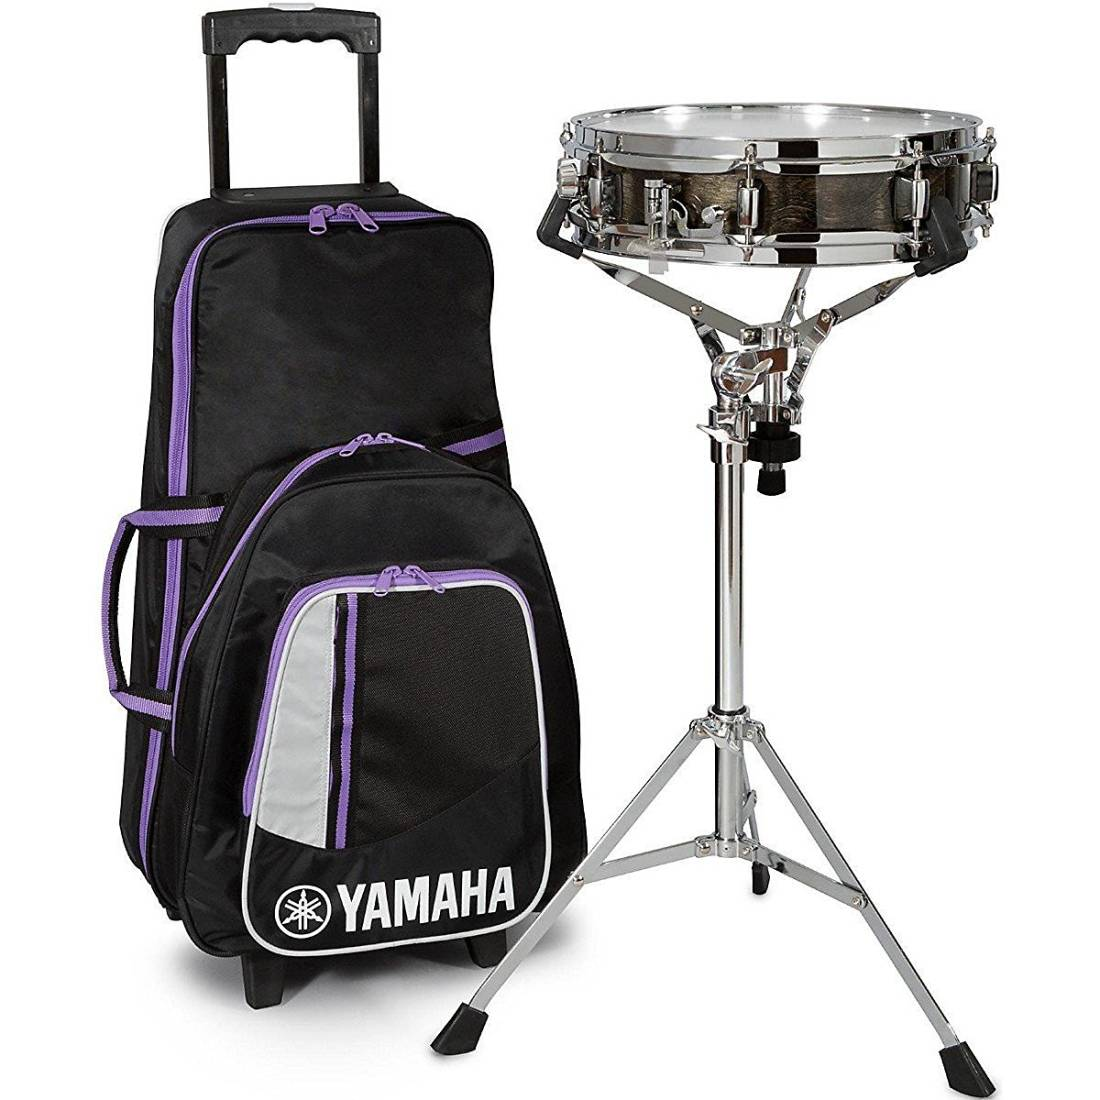 Student Percussion Kit : yamaha student percussion kit with 2 5 octave bells and snare long mcquade musical instruments ~ Russianpoet.info Haus und Dekorationen